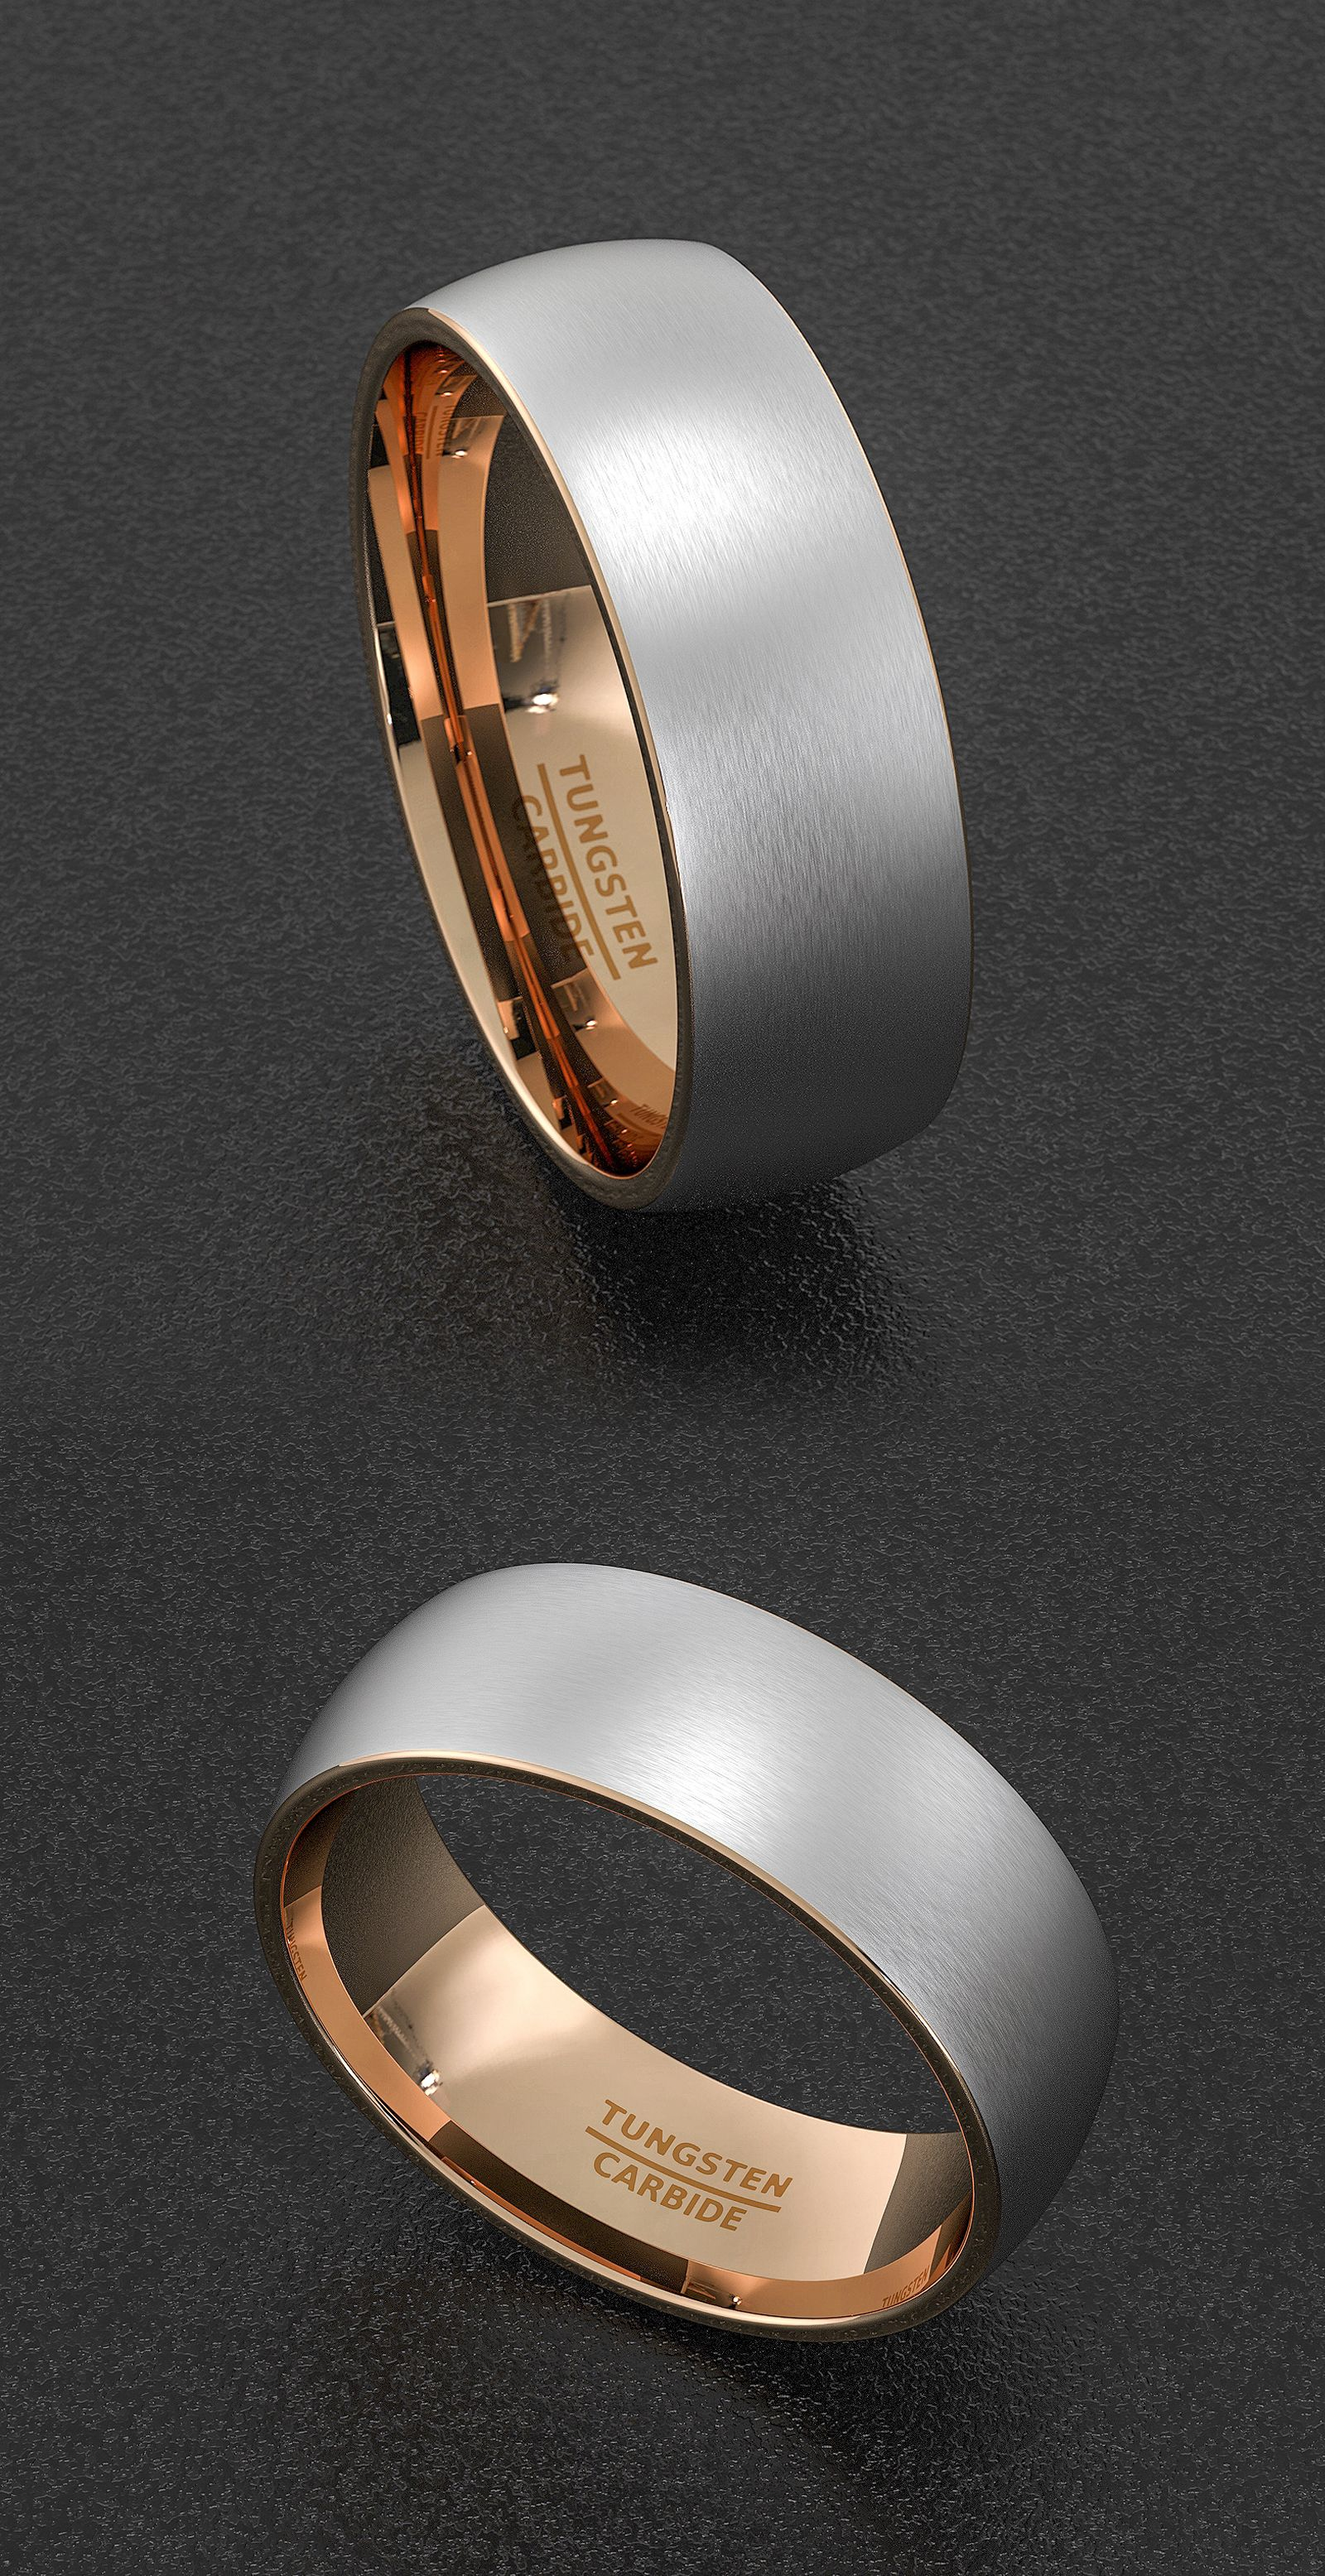 of handcrafted this a koa wood pin ring that is crafted out rings what tungsten carbide